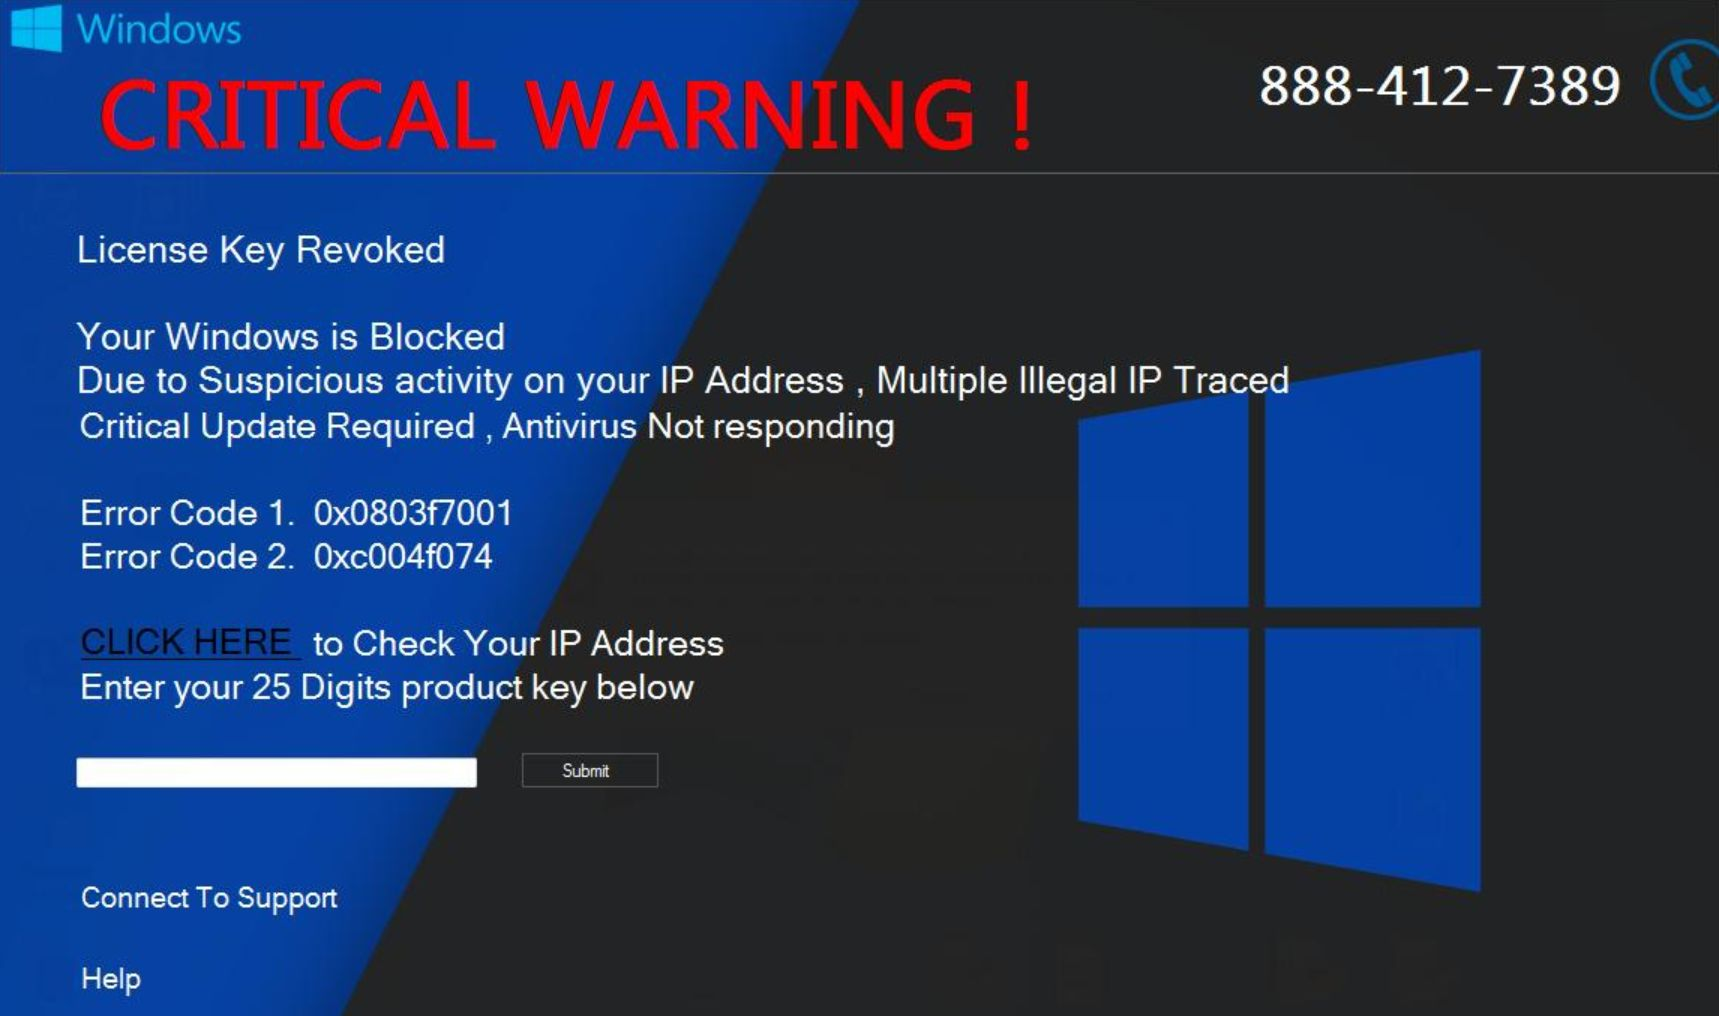 Image: CRITICAL WARNING! - Tech Support Scam